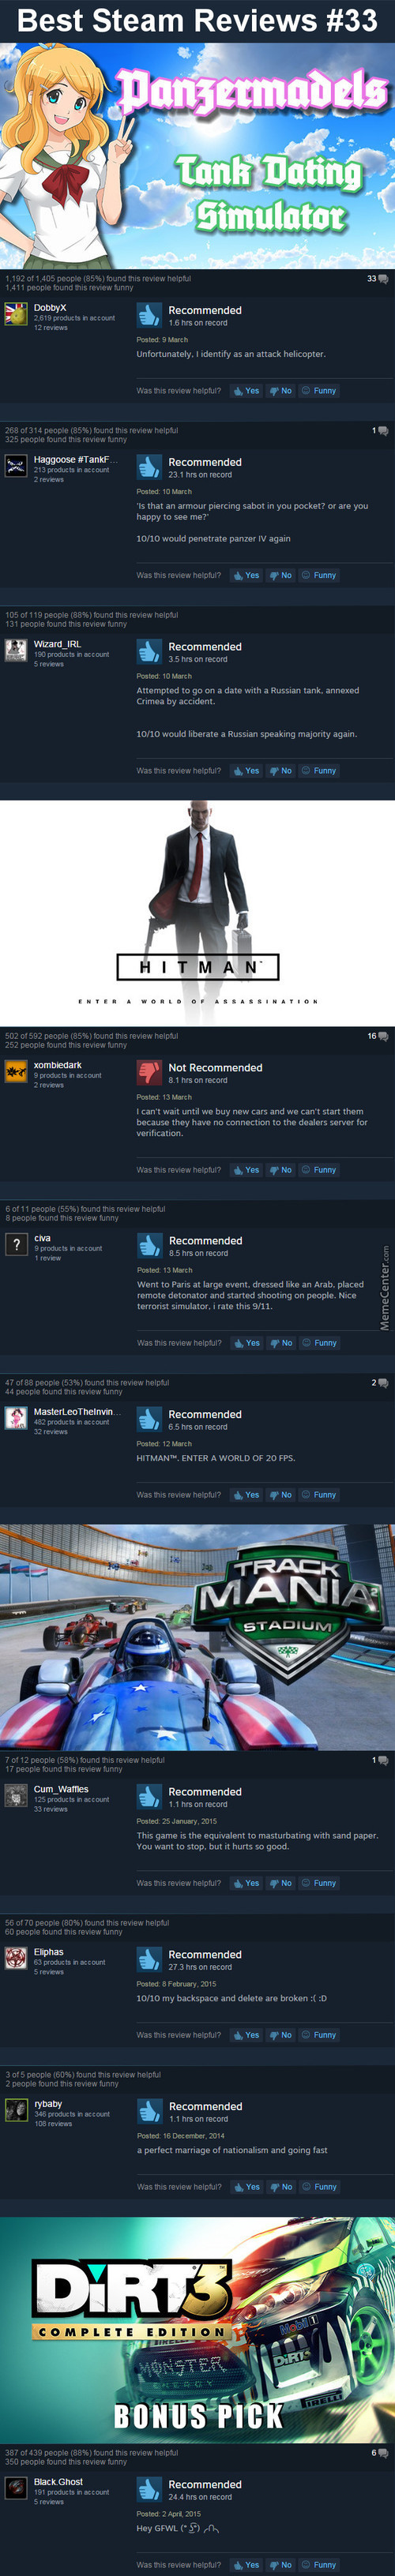 Best Steam Reviews #33 - Bottom Text